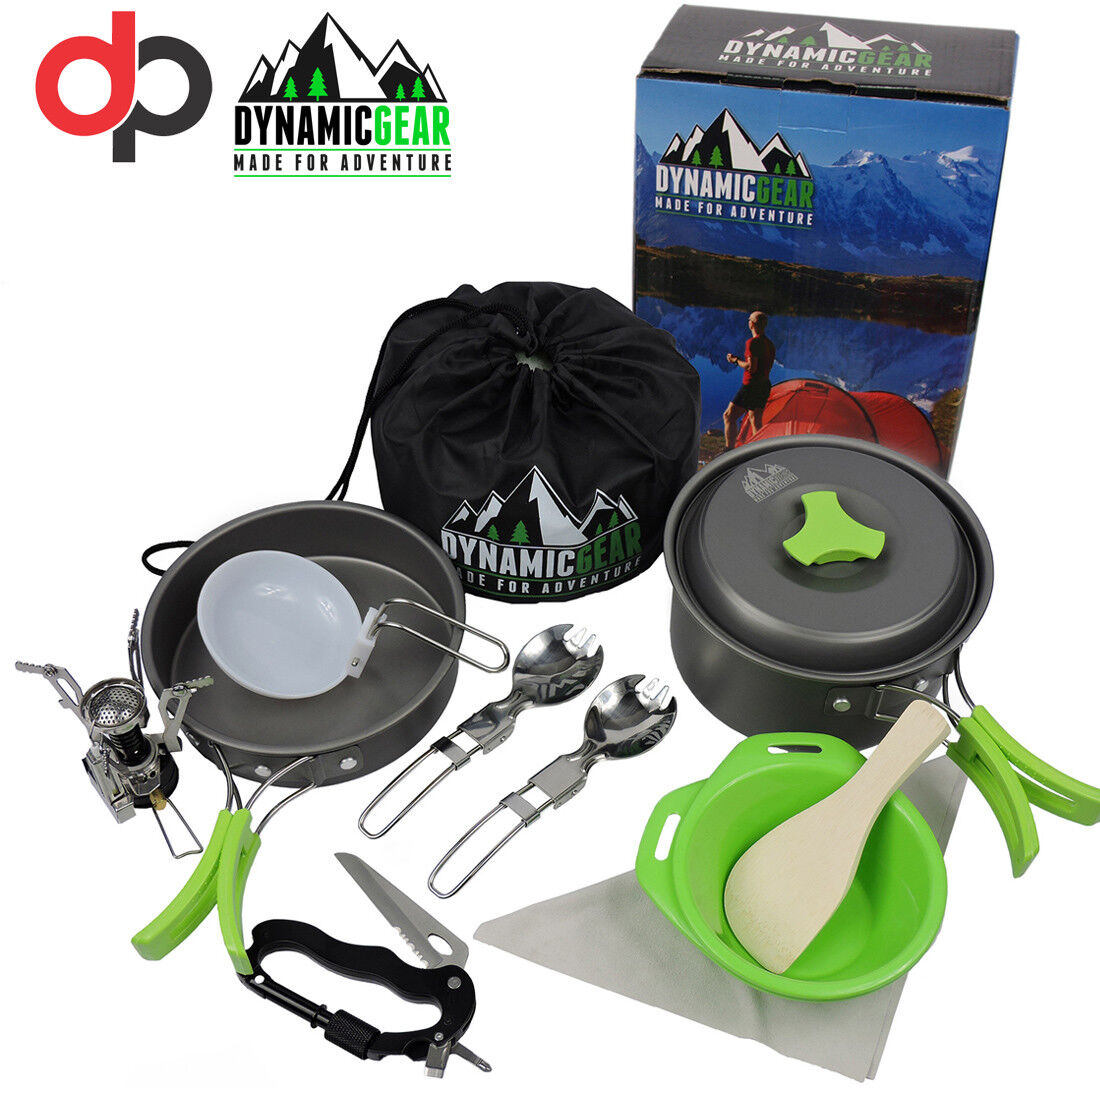 Portable Camping Cookware Mess Kit By DynamicGear 13 pcs Lightweight Stove inc.